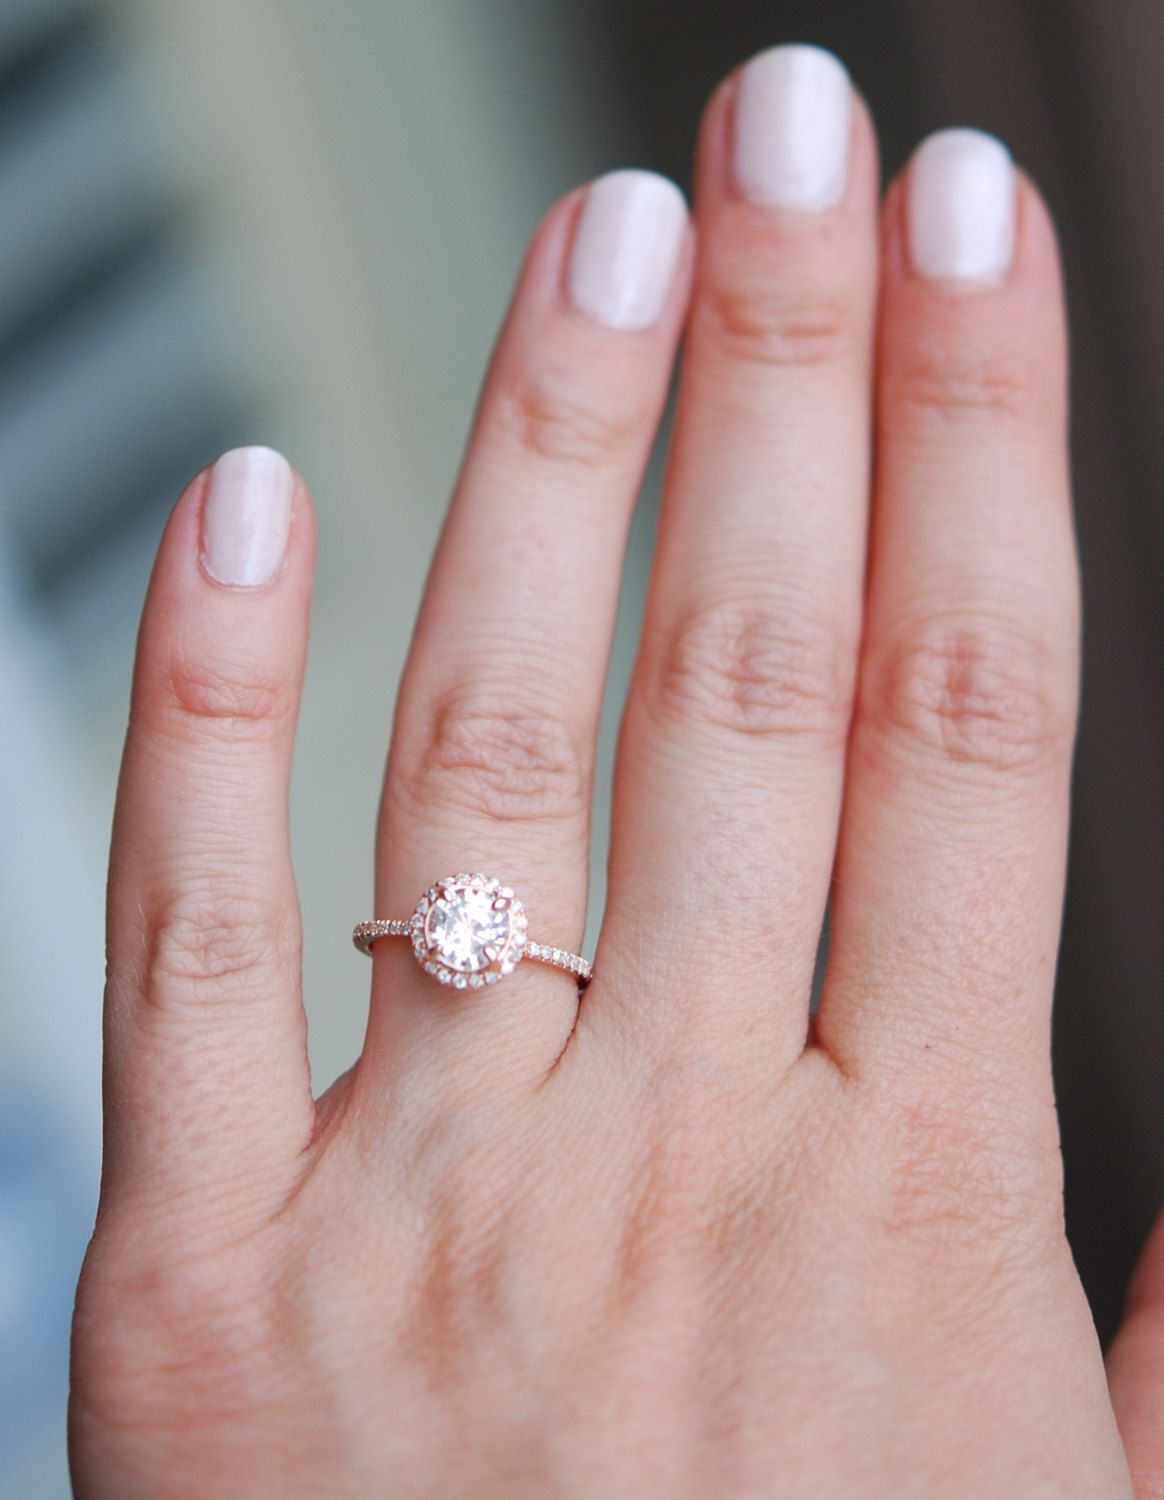 Rose gold diamond ring engagement ring with 1ct round white sapphire ...